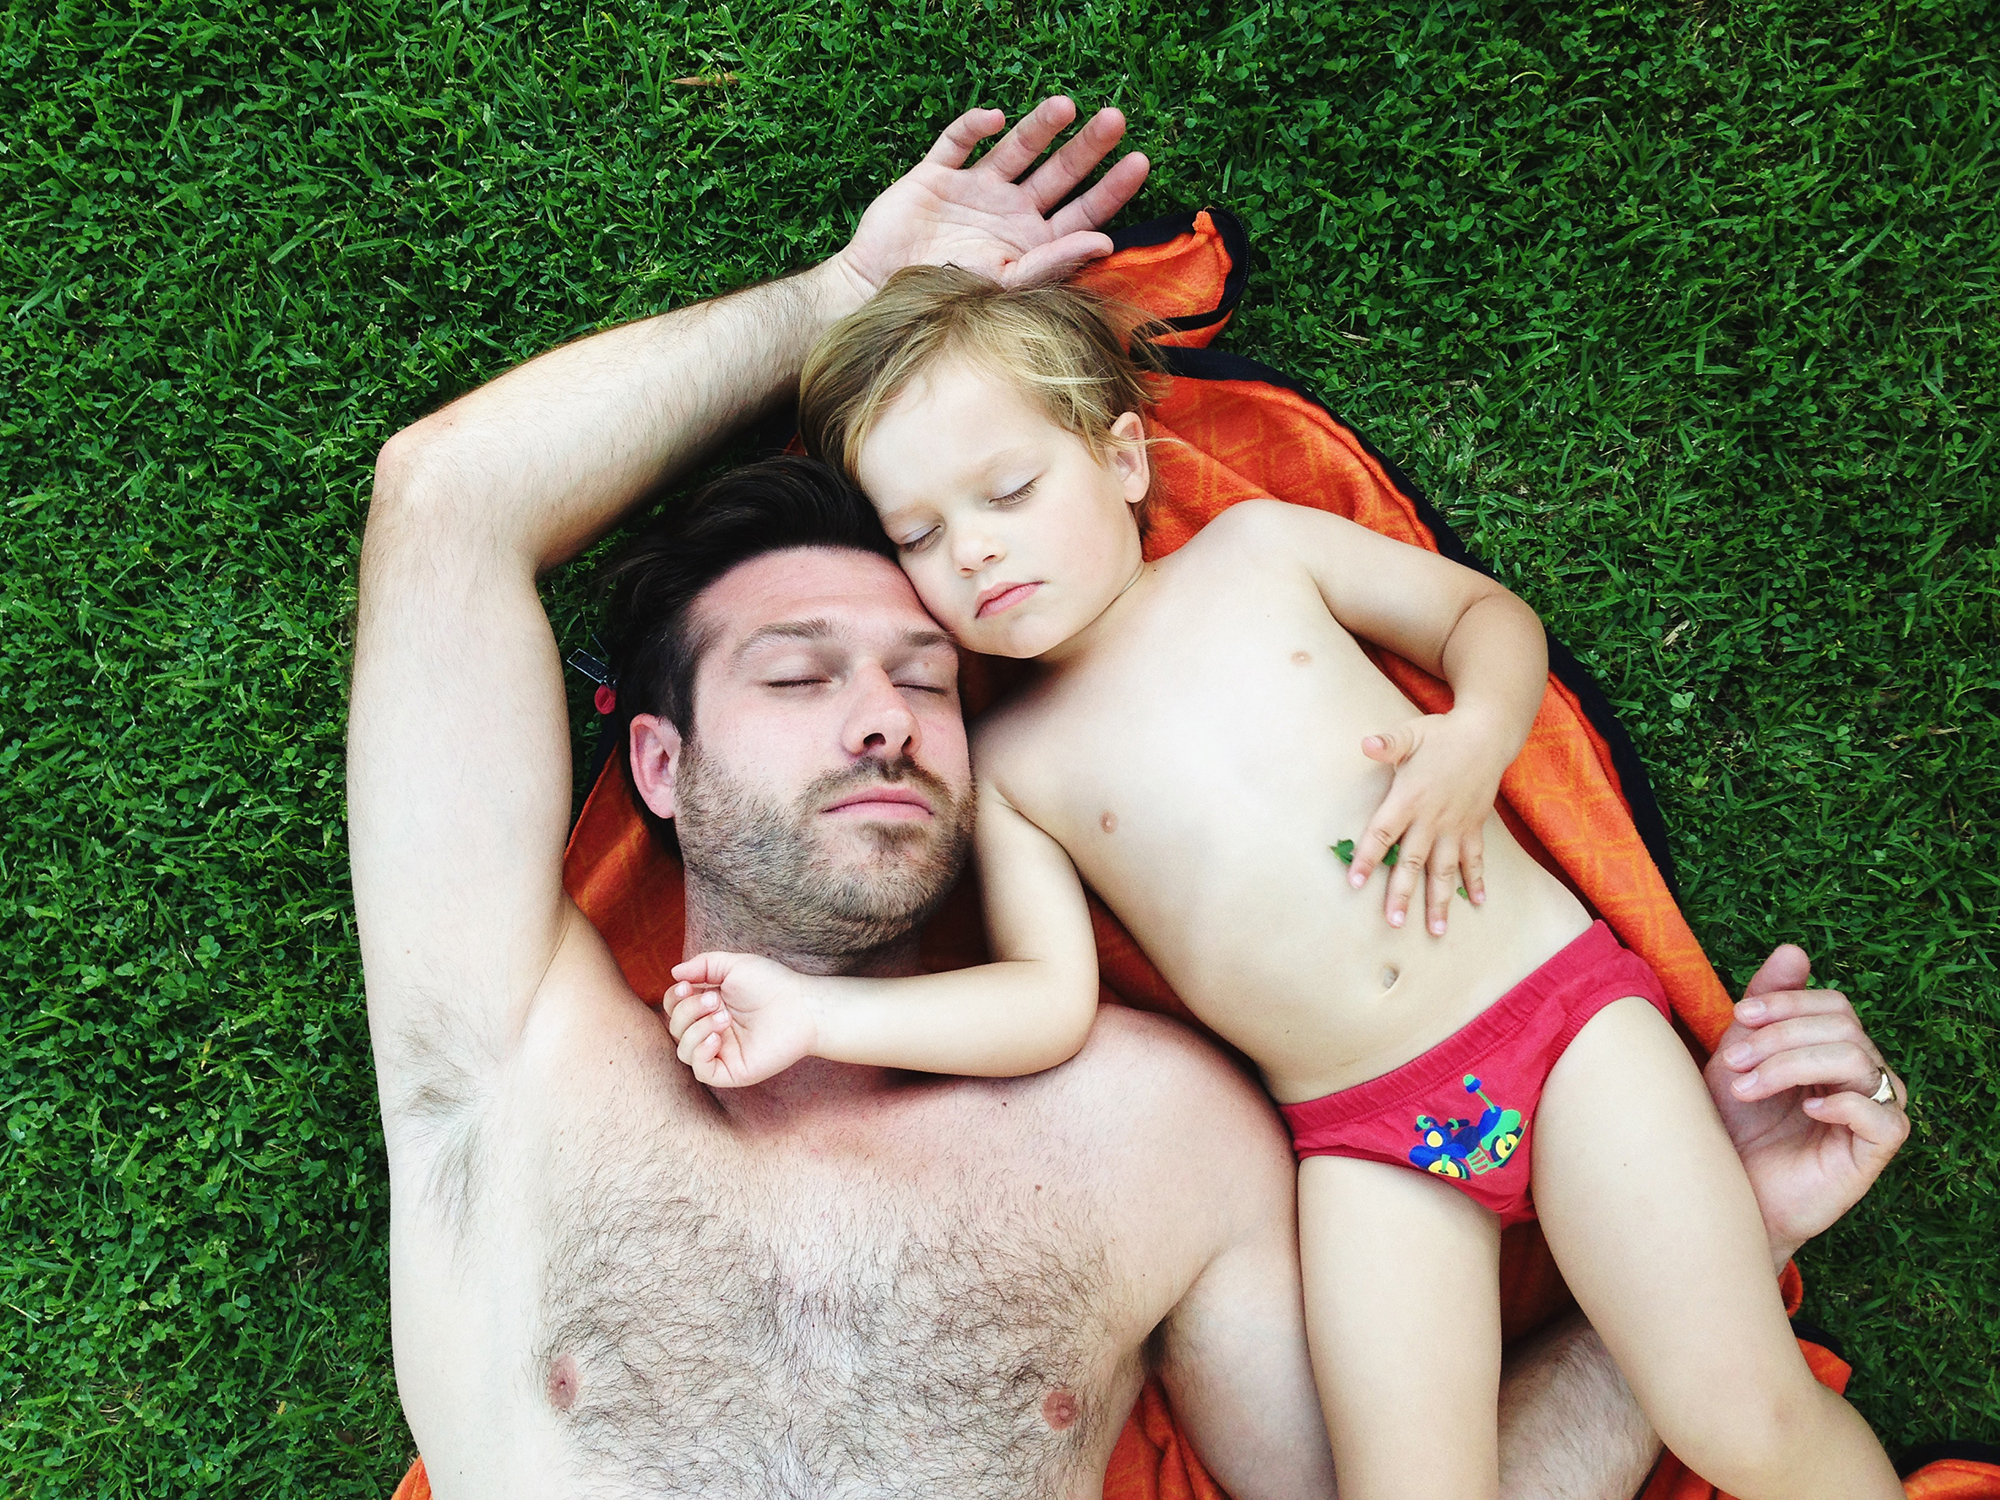 Father and son taking a nap on the grass. Photo by STUDIO 1208